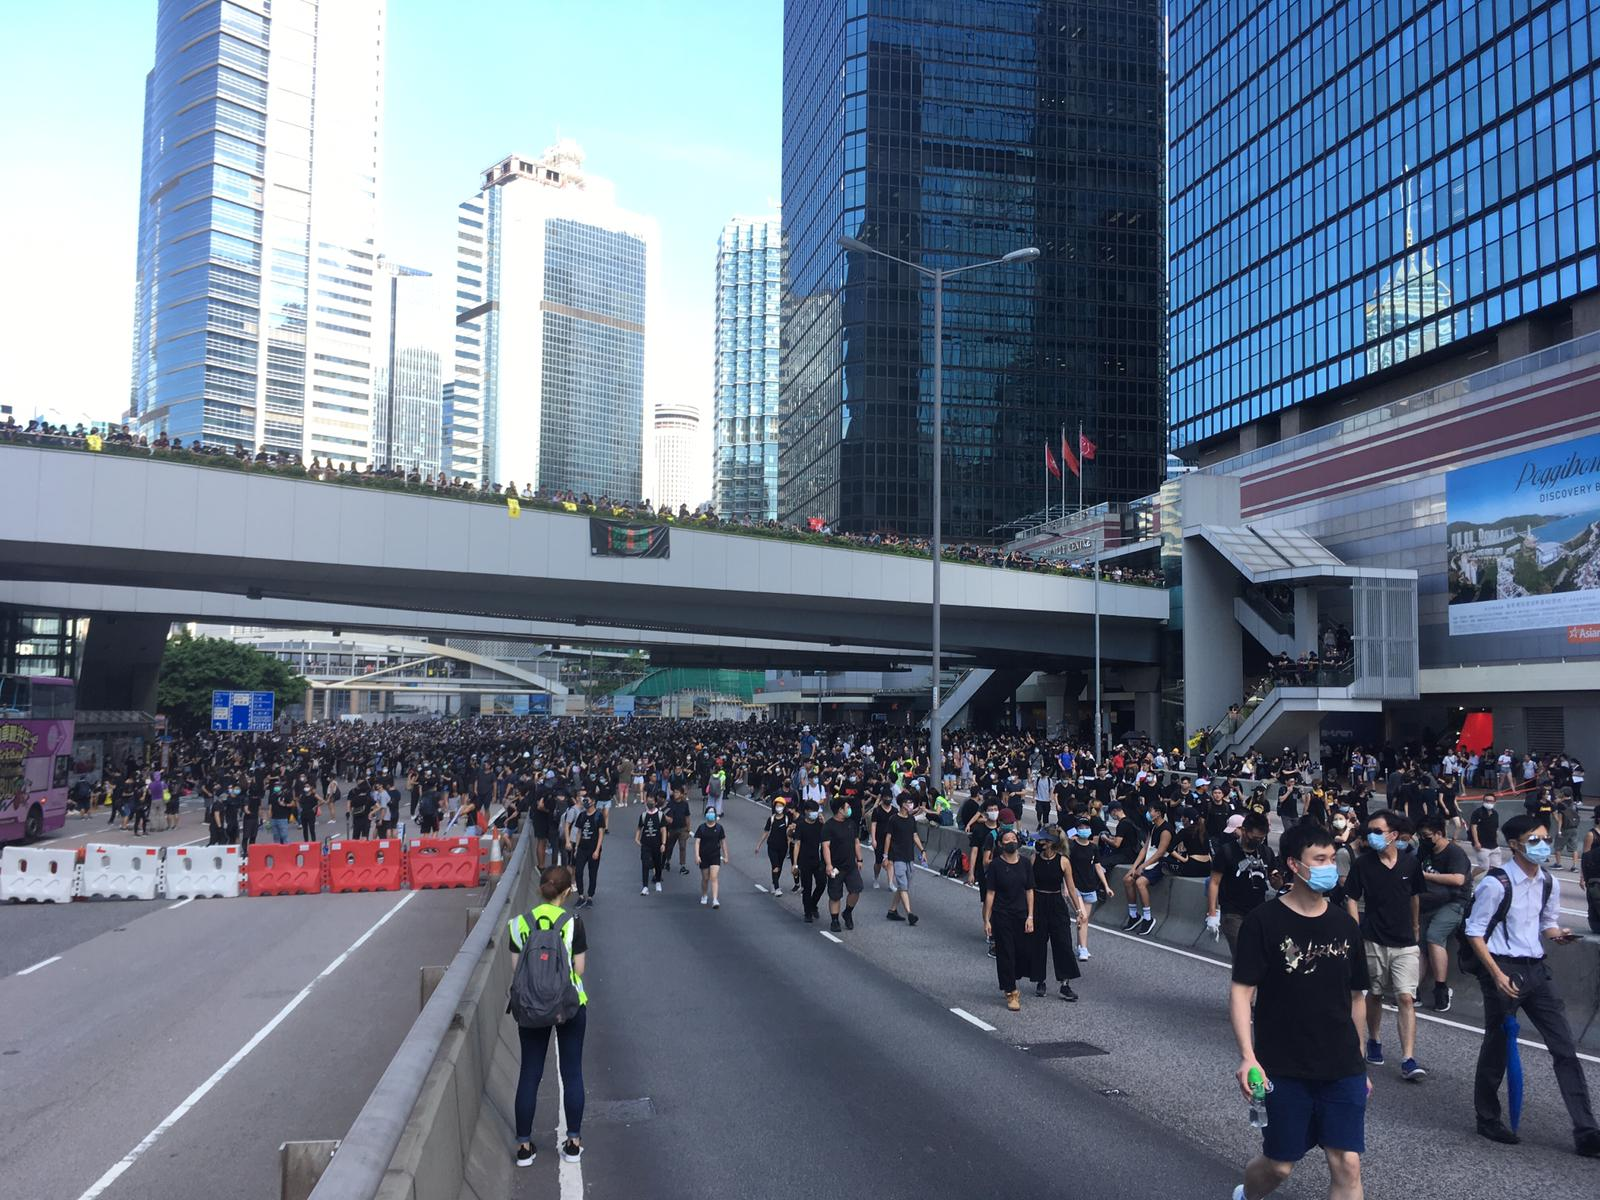 Protesters are gathering in Admiralty, on Hong Kong Island.